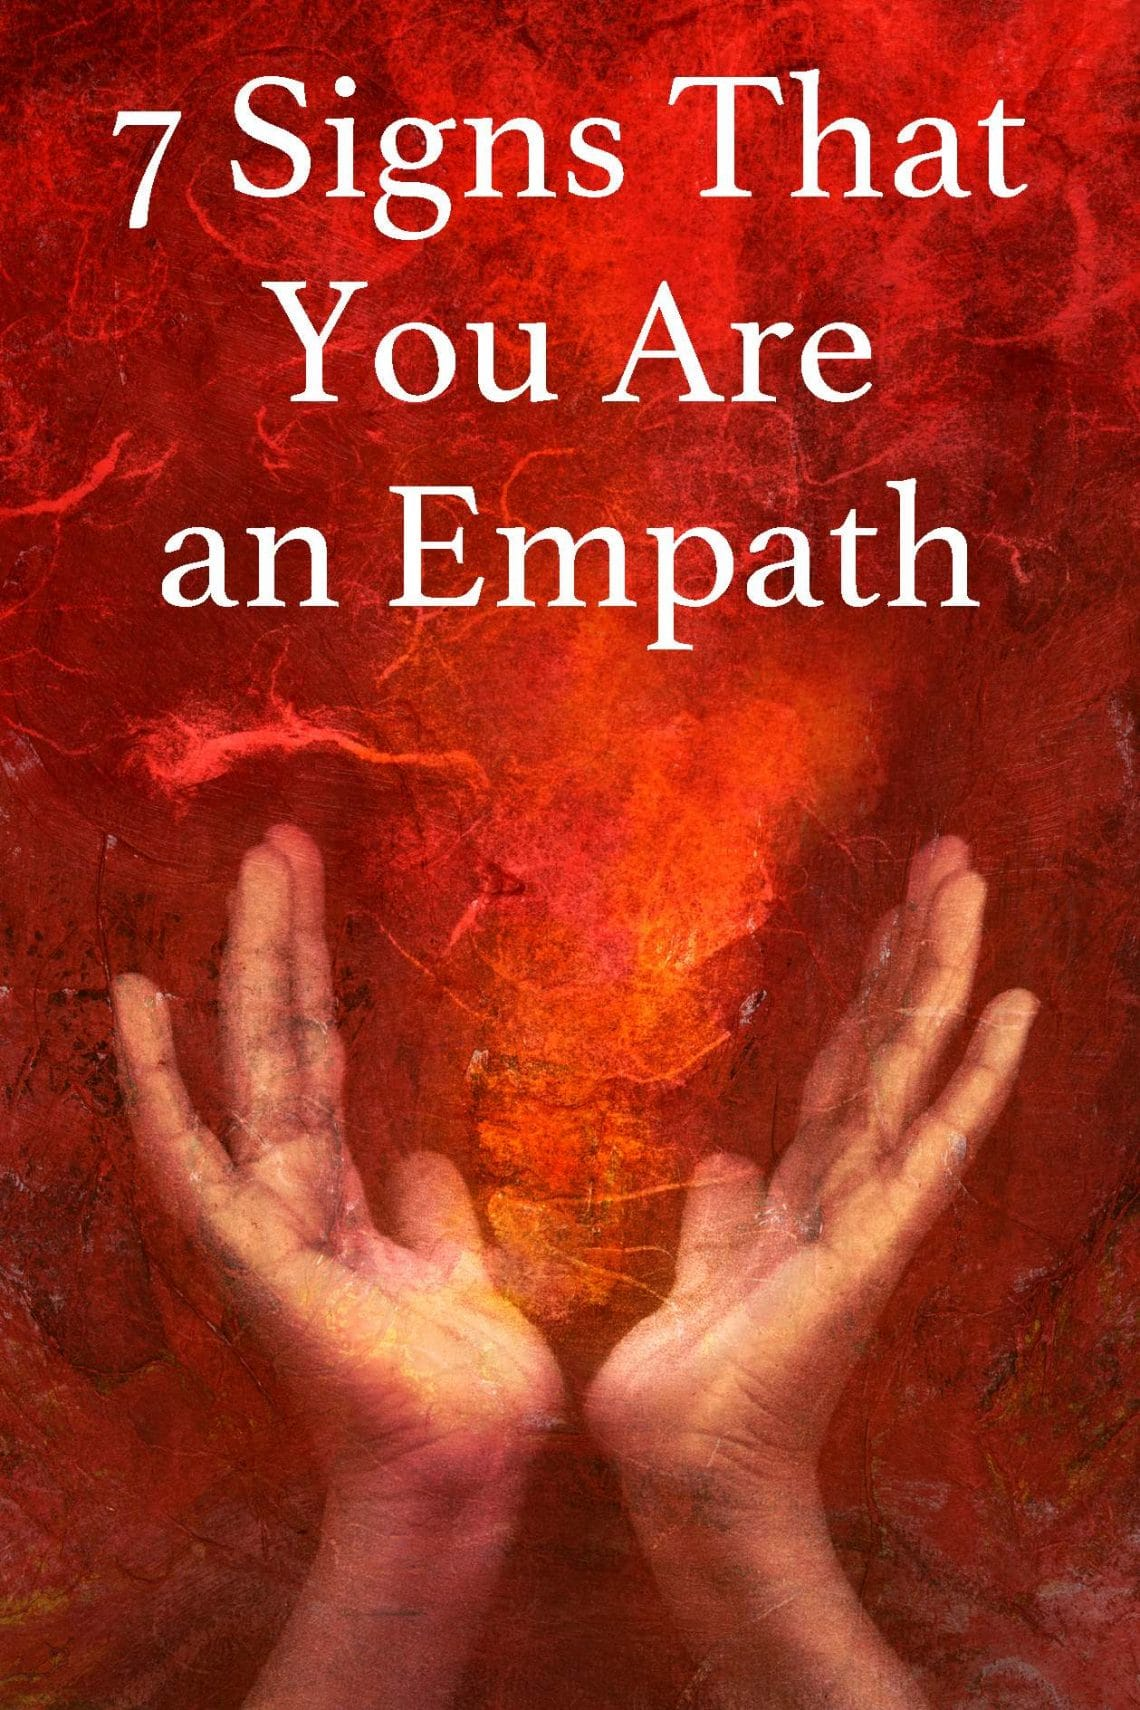 Check out this signs to see if you are an empath.